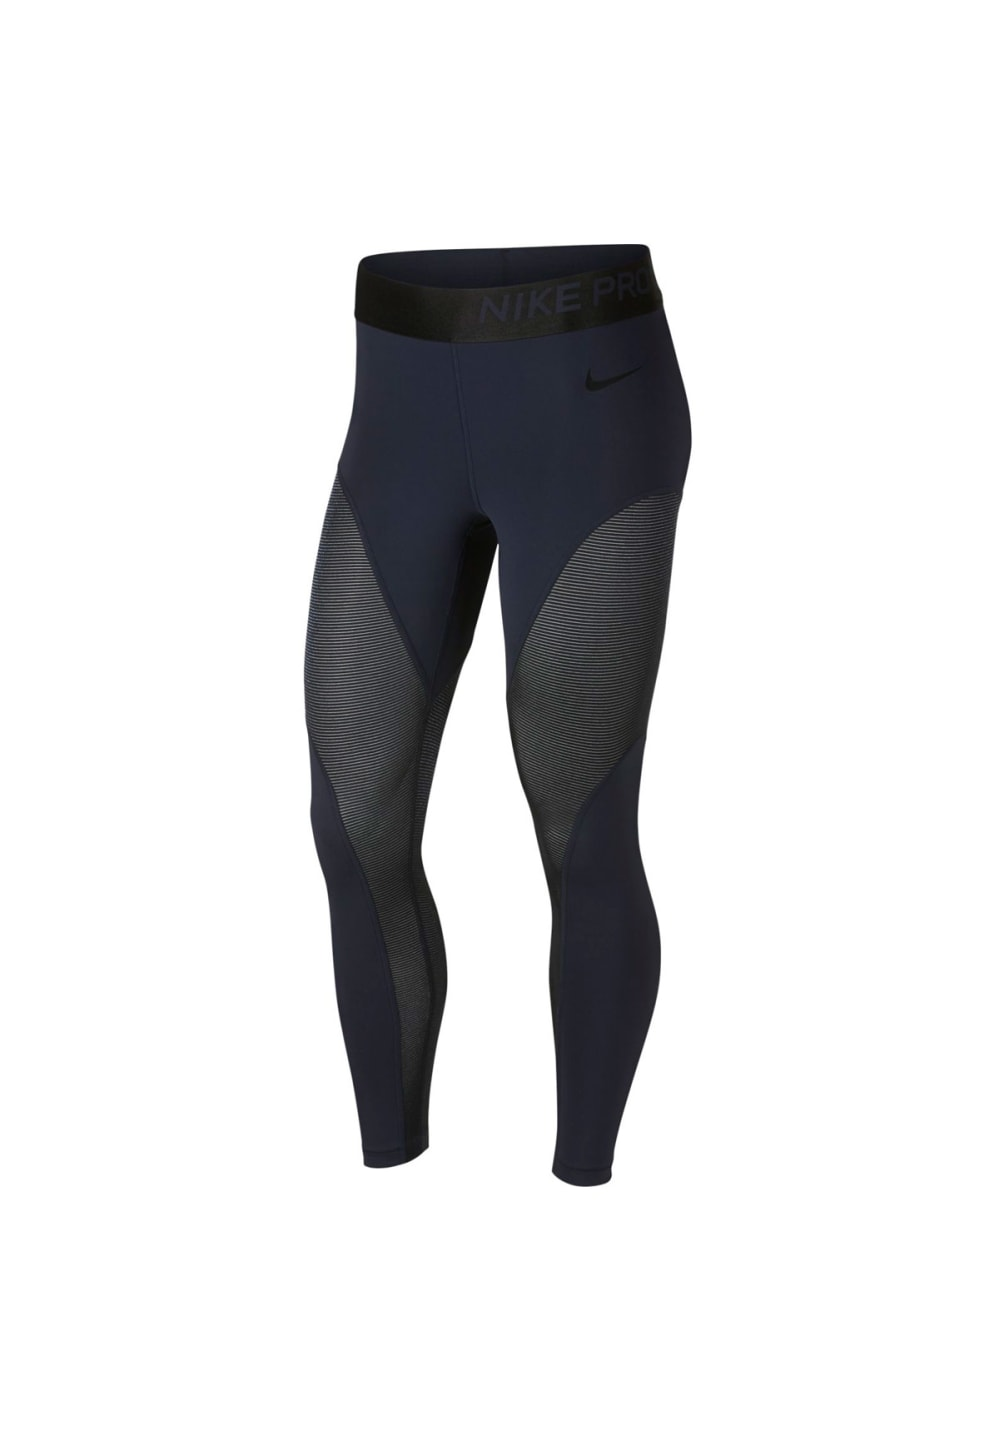 ff72fdbc56ec4f Next. Nike. Pro Warm 7/8 Tights - Running trousers for Women. €49.95. incl.